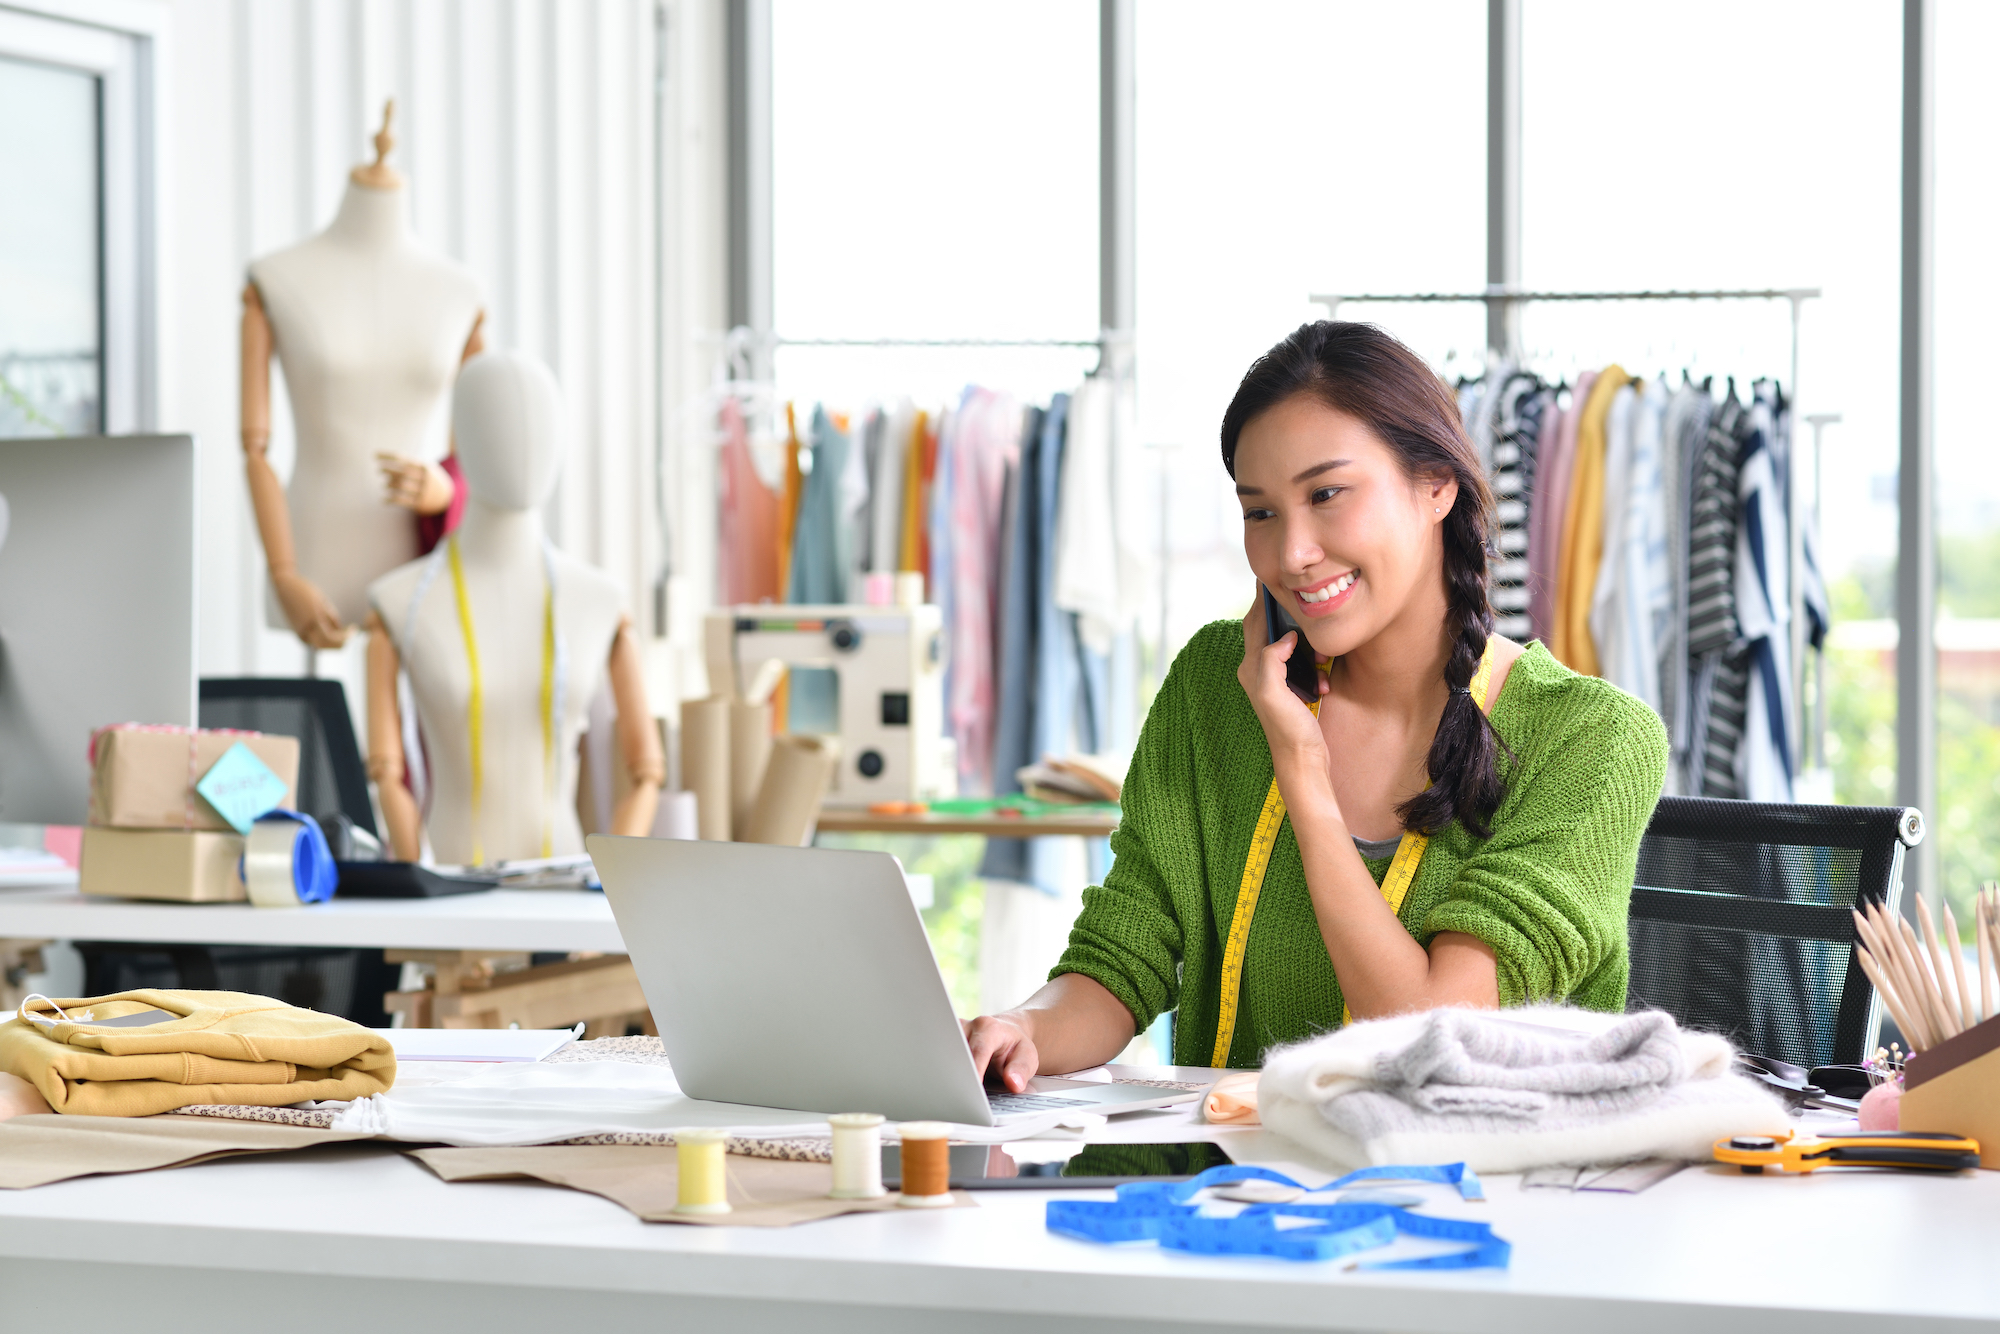 Procrastinating Your Business is Common so Here are Tips to Overcome